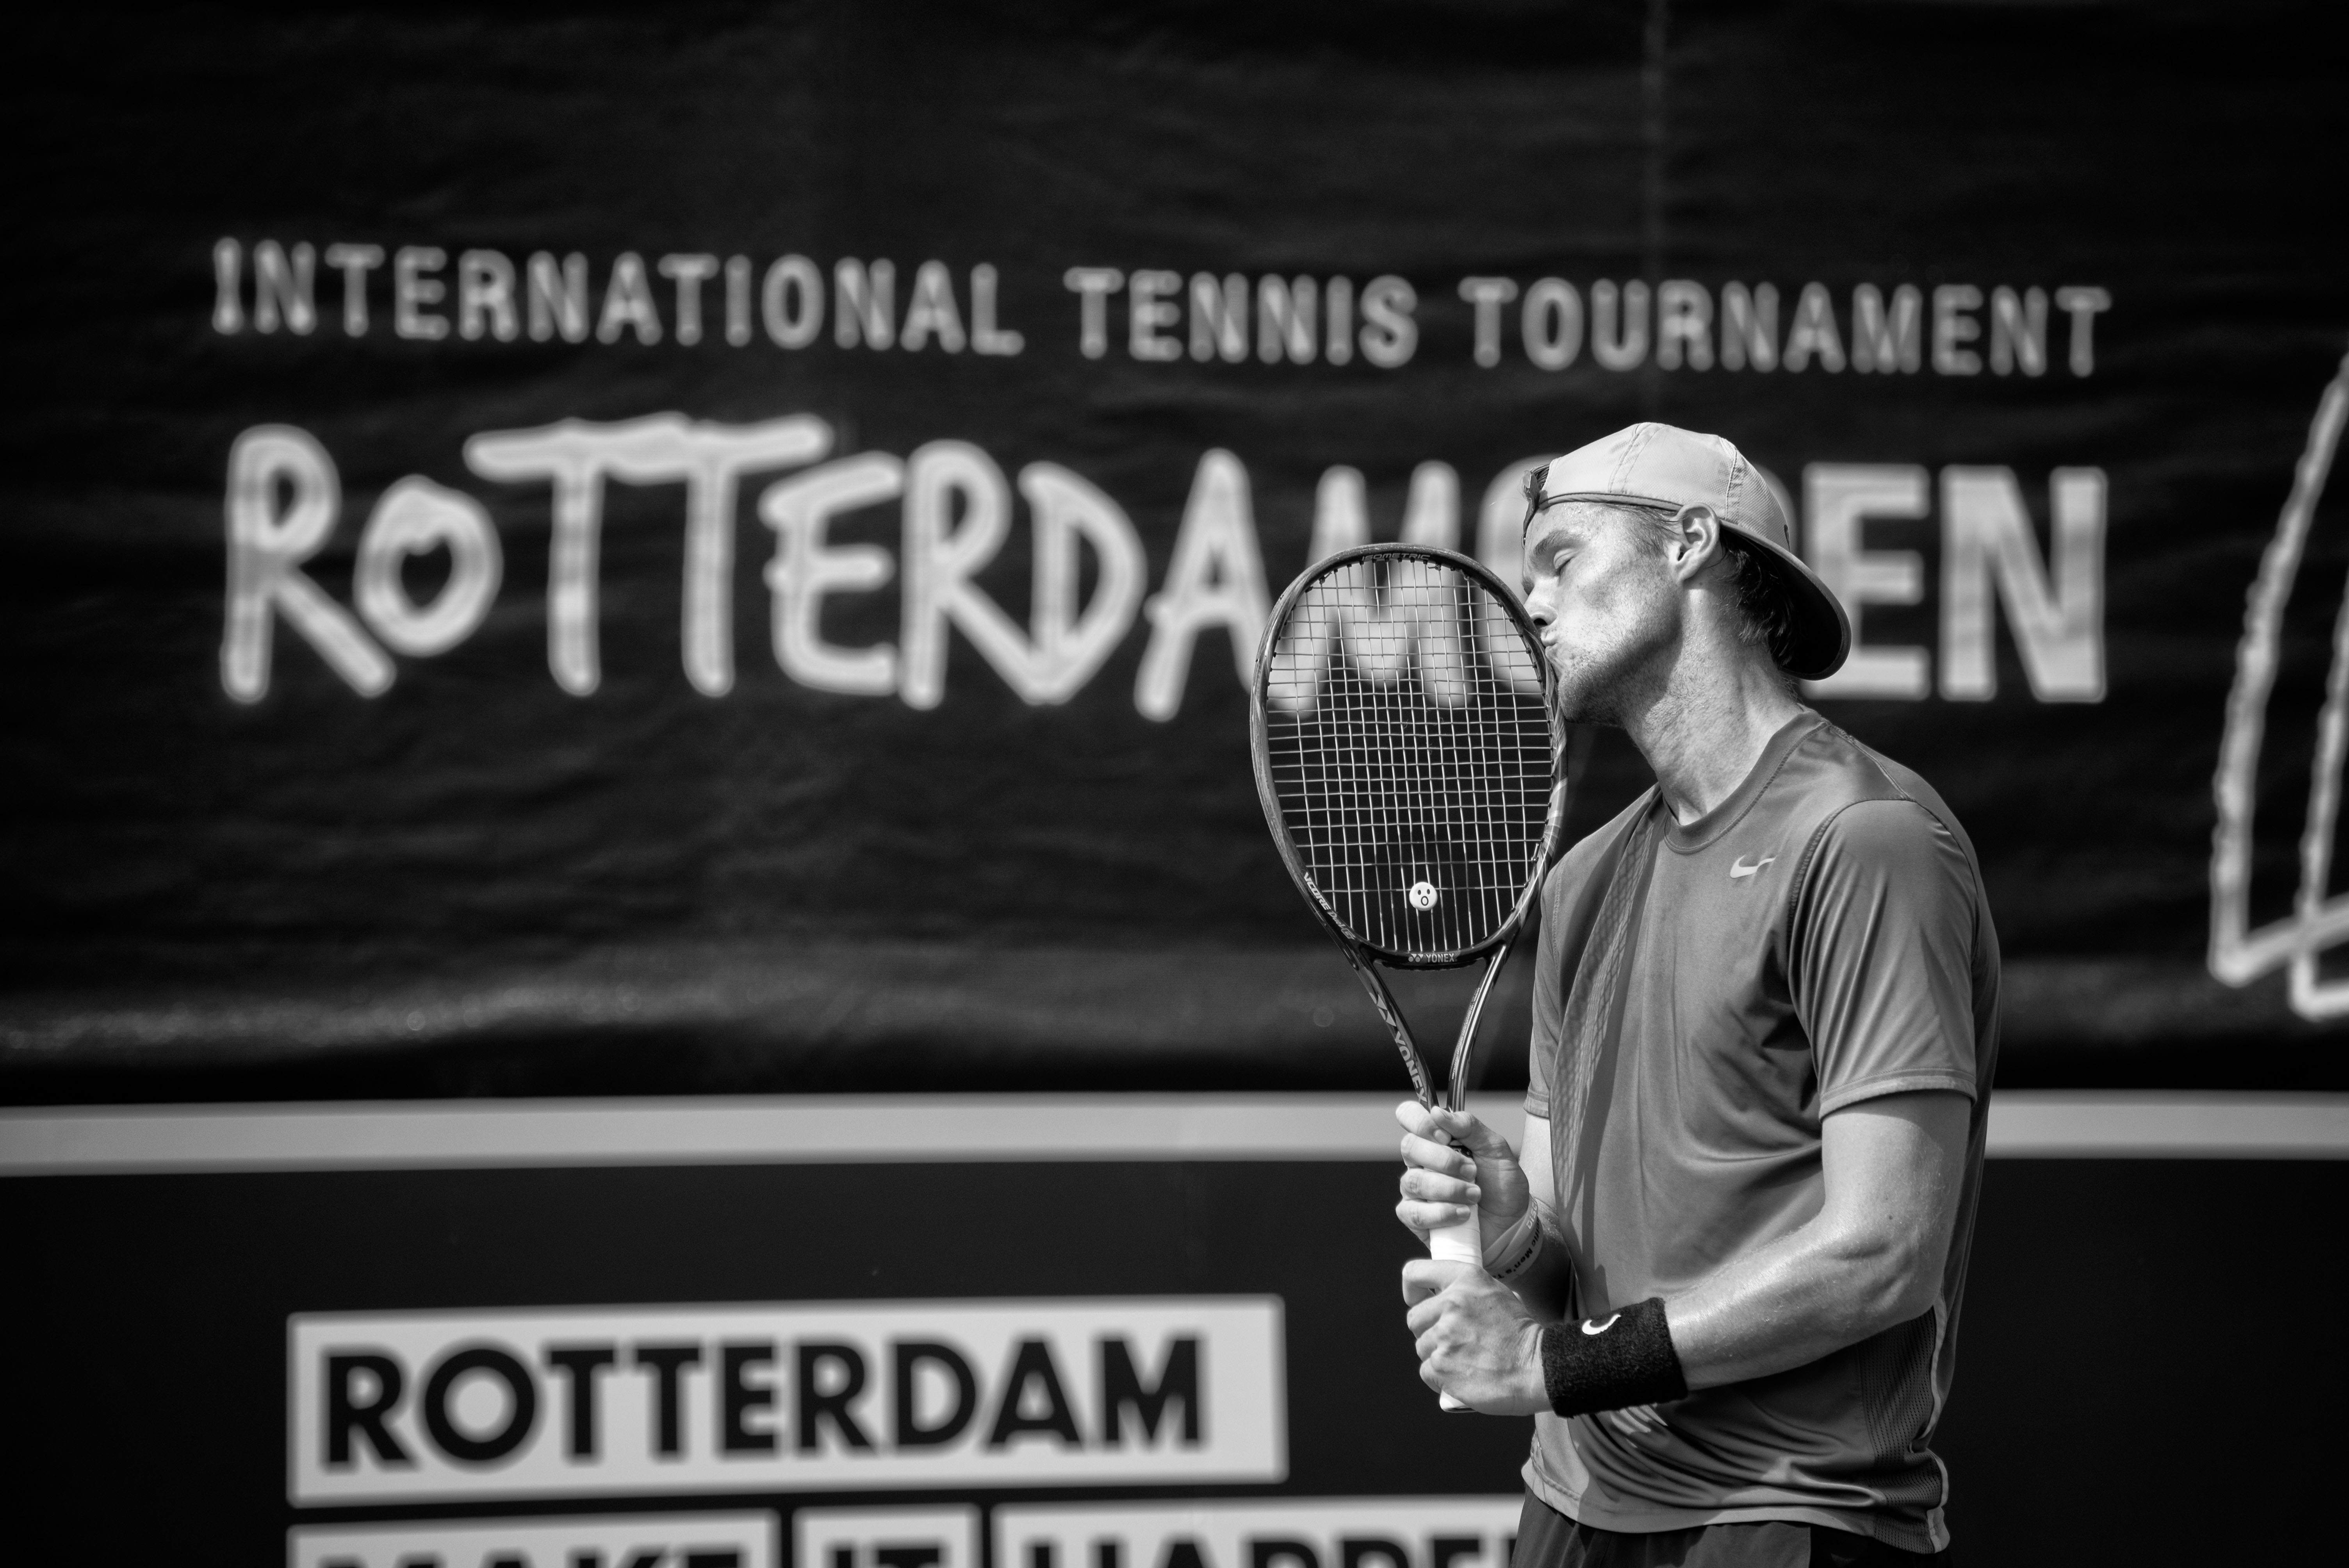 Sportportret - Rotterdam Open specials 2017 - Kissing the racket